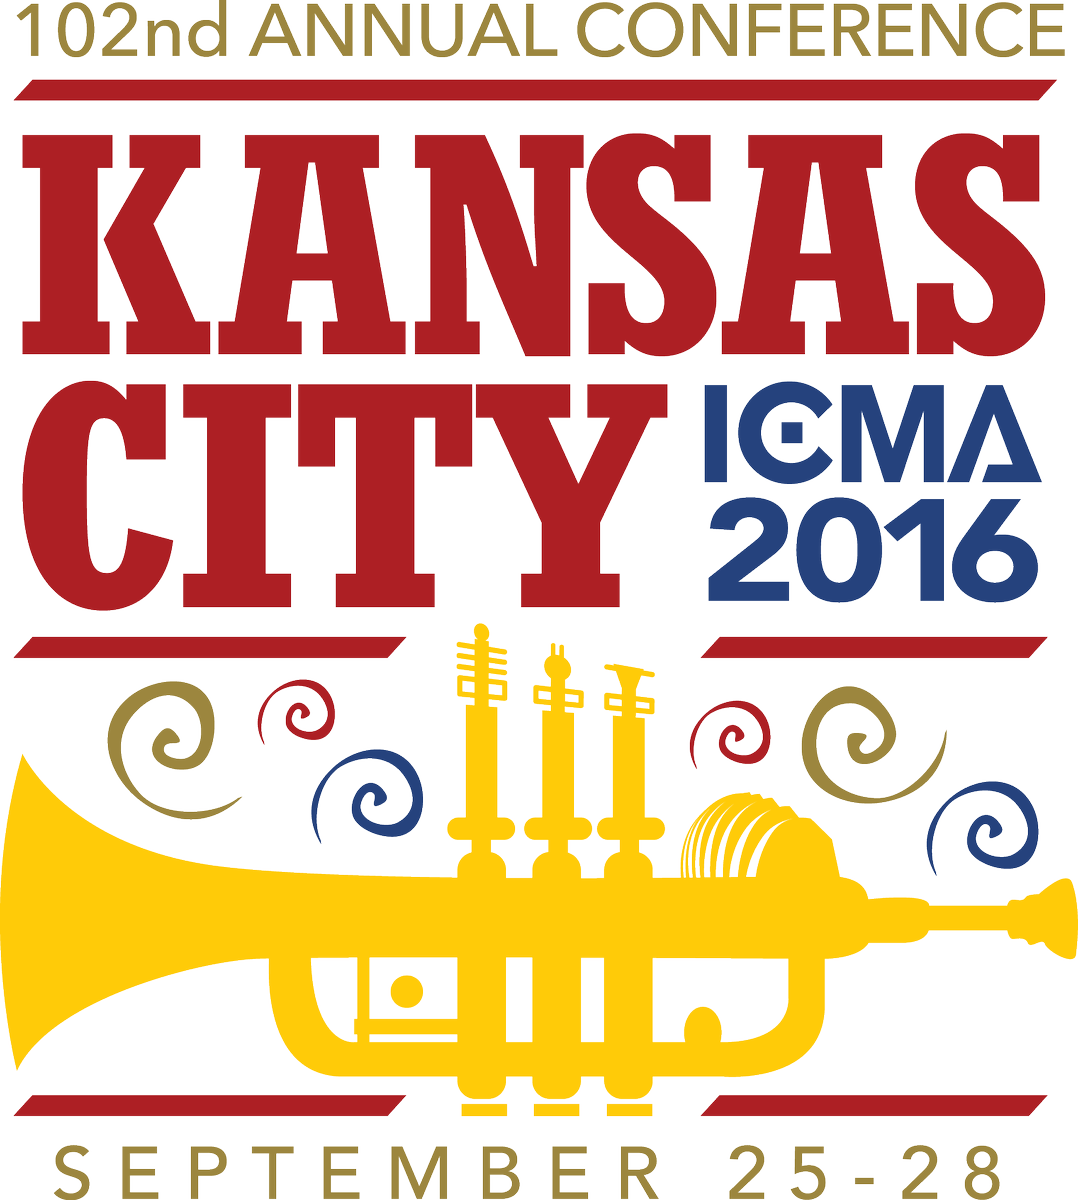 Scholarships available for First Time Partner Attendees to #ICMA2016 -- apply by Aug. 31.https://t.co/W73kXrokmb